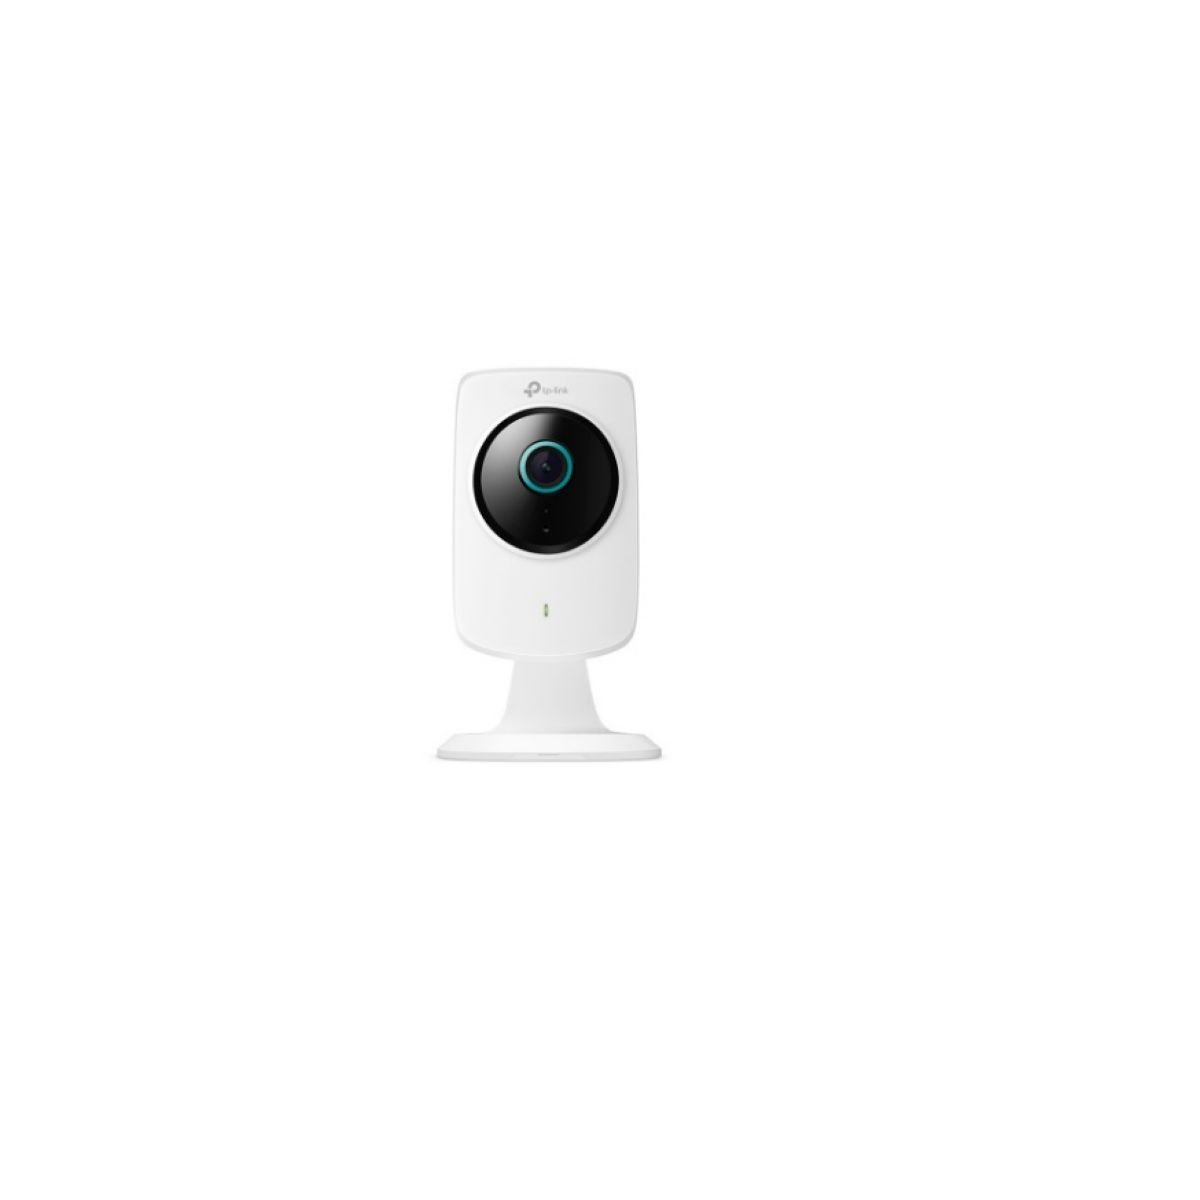 Camara Tpl Wifi Cloud 300mb Nc260